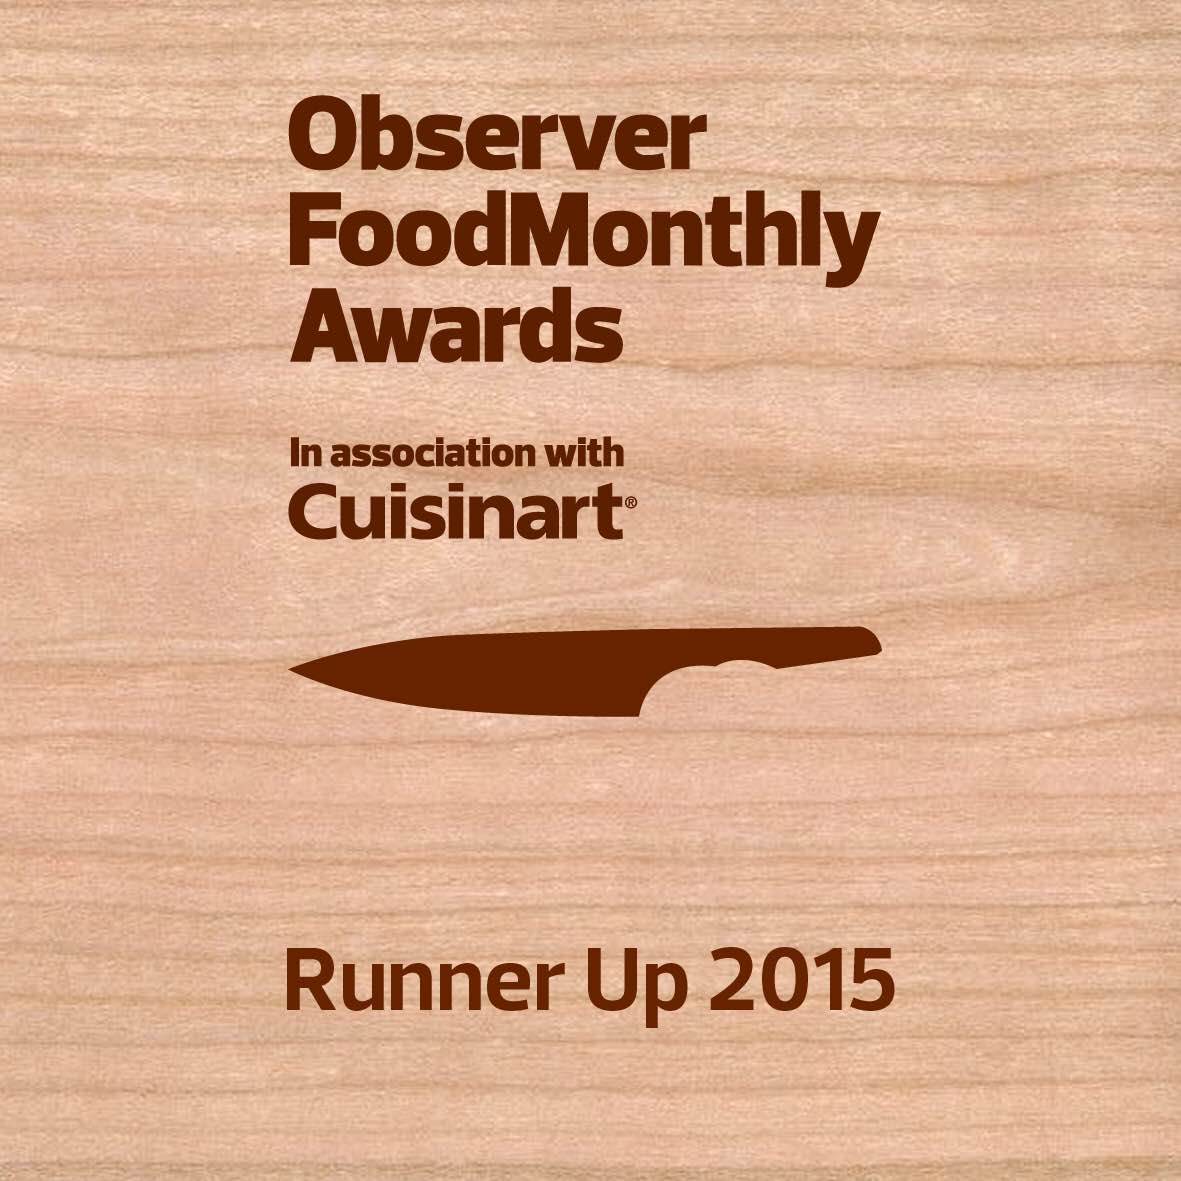 Observer Food Monthly Awards logo